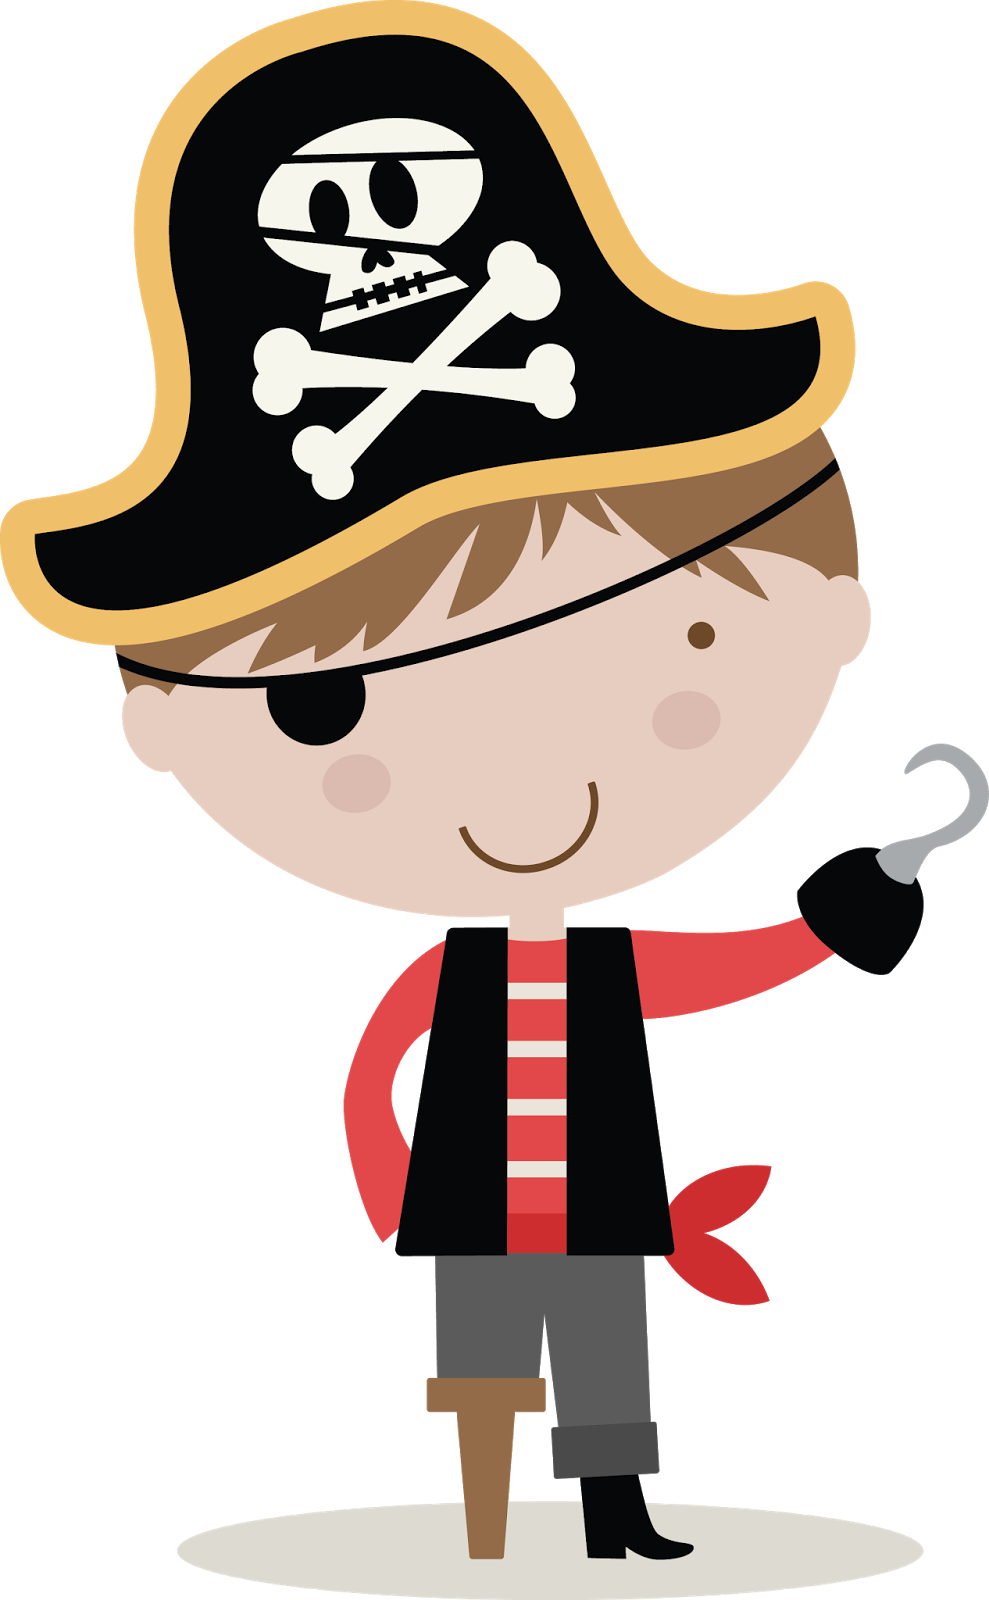 pirate png 35011 free icons and png backgrounds